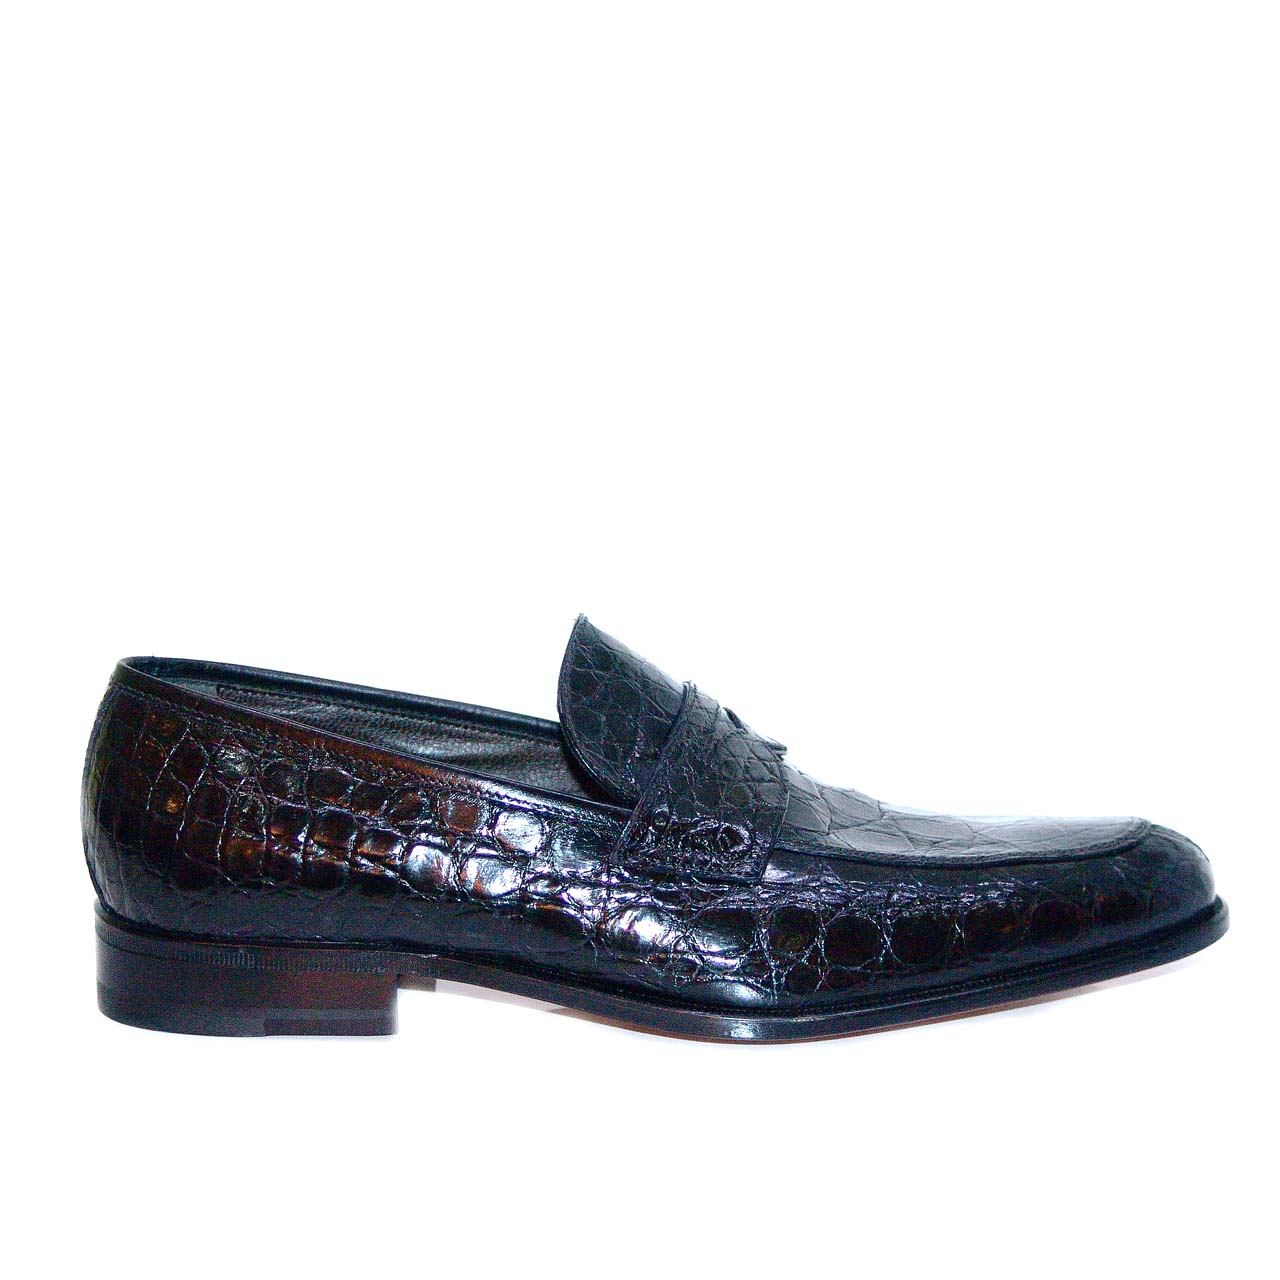 Moreschi 36630 Full Alligator Penny Loafer Black